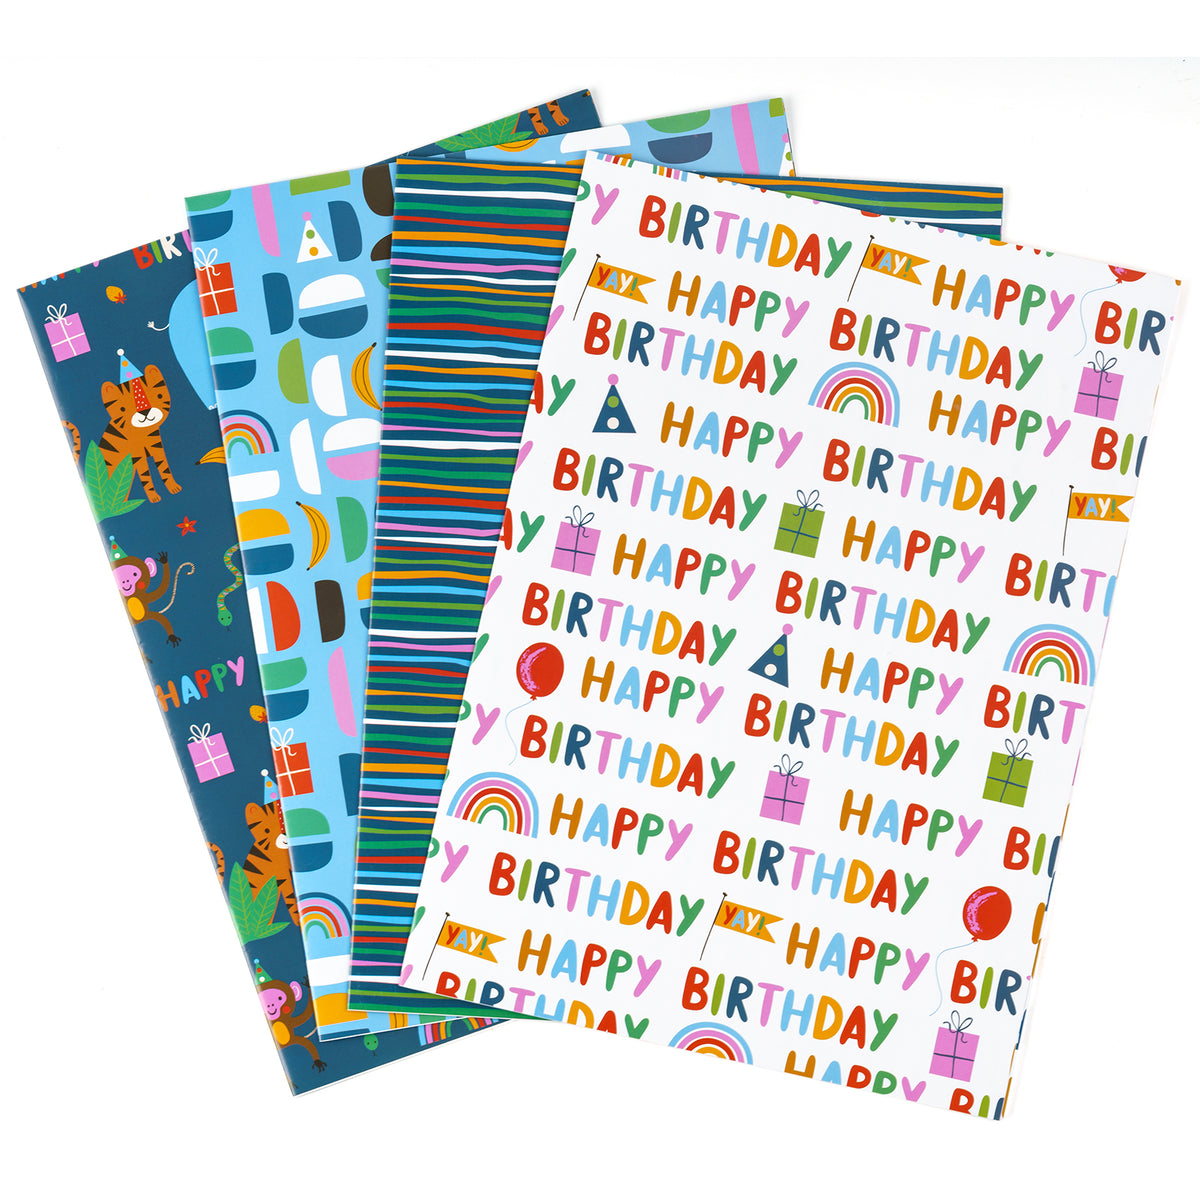 Wrapaholic-Wrapping-Paper-Sheet- Folded-Flat-4 Different-Birthday-Design (30.1 sq. ft.ttl.) - 27.5 inch X 39.4 inch-Per-Sheet-1